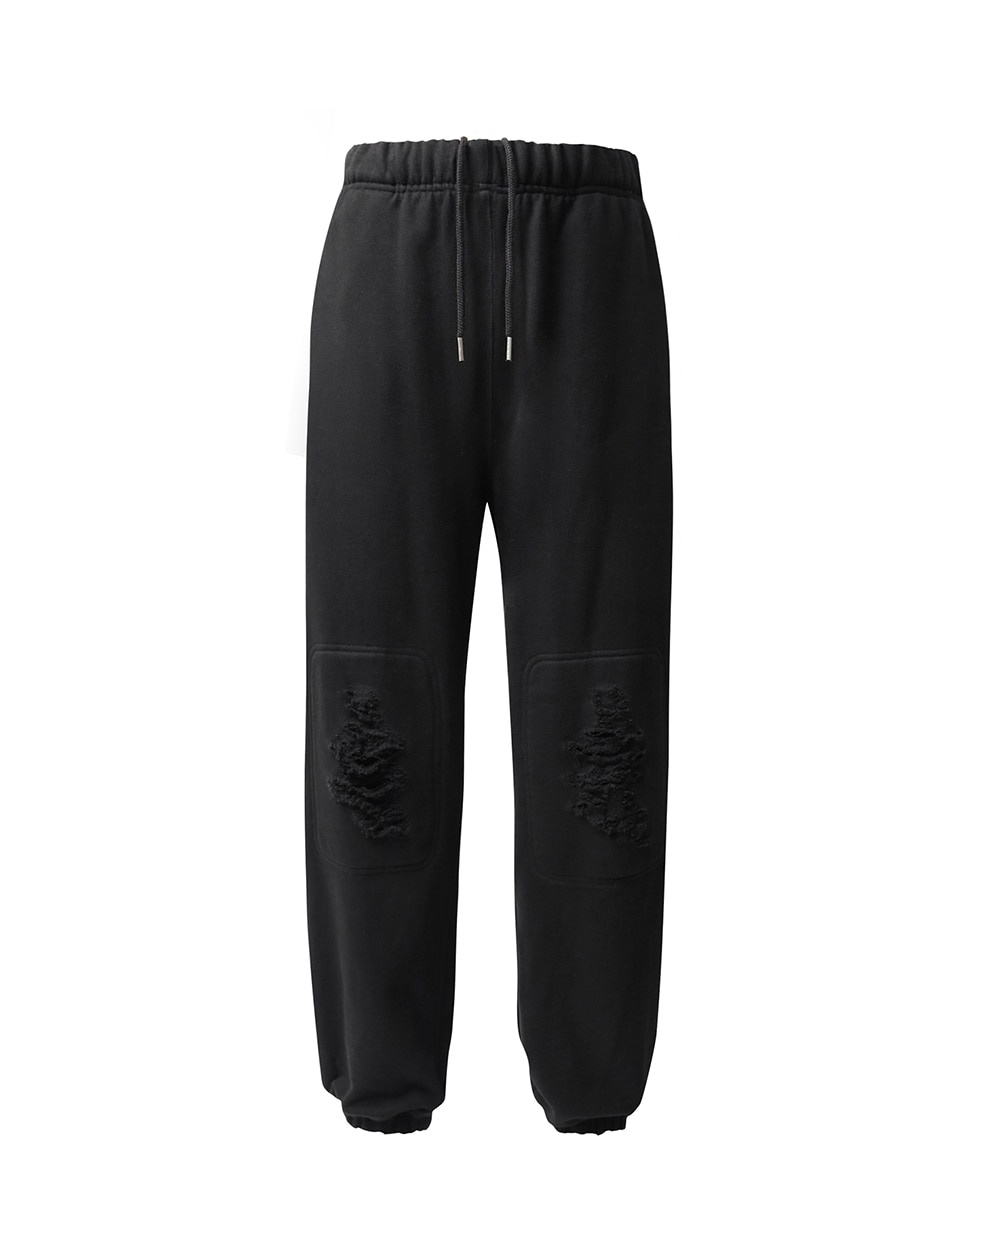 ATE STUDIOS AUTHENTIC SCAR SWEAT PANTS (Black)